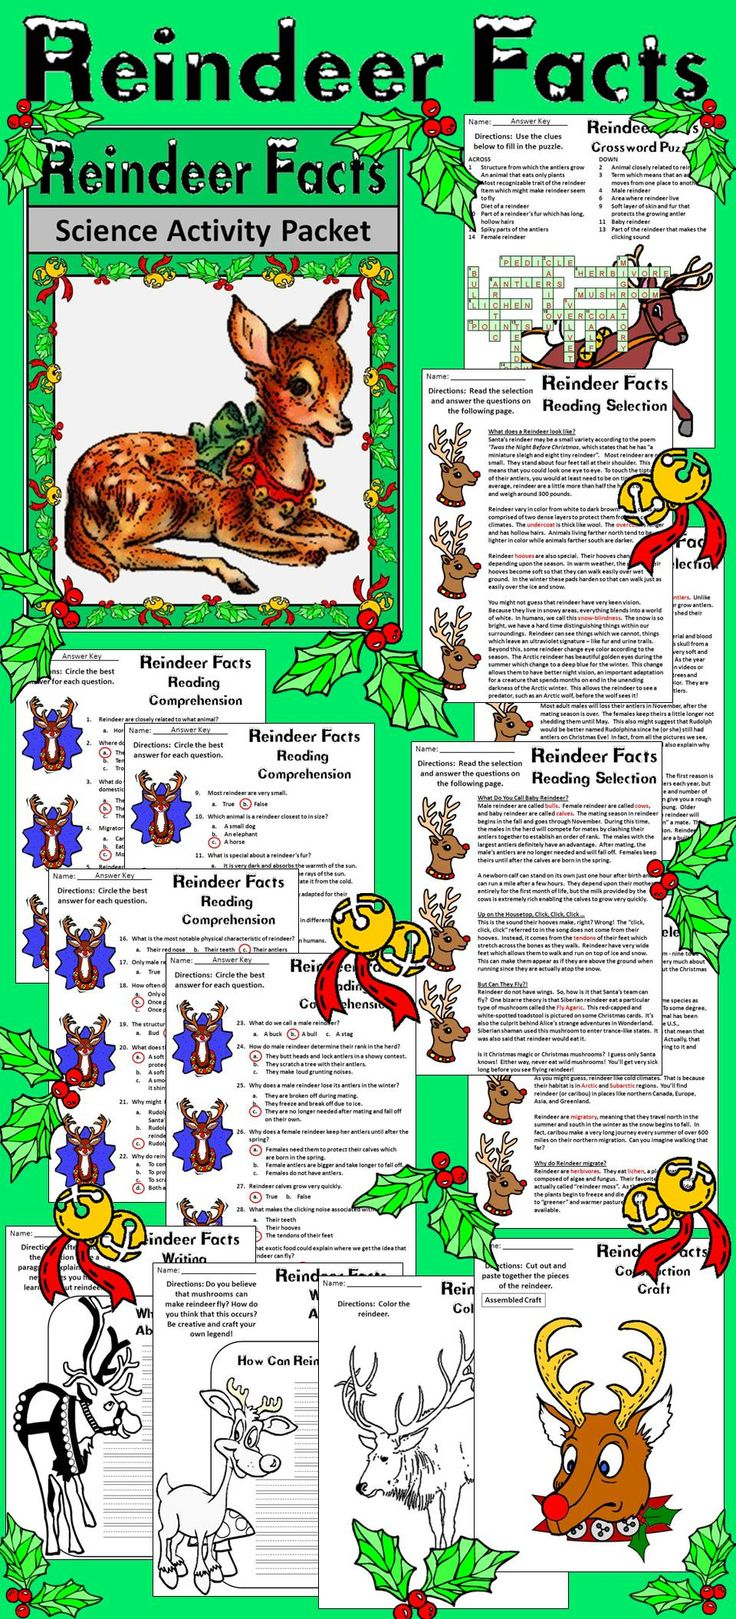 Reindeer Facts Christmas Activity Packet: This colorful Christmas activity packet provides a wealth of information on the mascot of the holiday season, the reindeer. Packet includes both color and b/w versions of all pages. Contents include: * Four Reindeer Facts Christmas Reading Selections * Four Reindeer Facts Christmas Reading Comprehension Quizzes * One Christmas Reindeer Crossword Puzzle * Two Reindeer Writing Activities * One Reindeer Construction Craft * Five Reindeer Coloring…